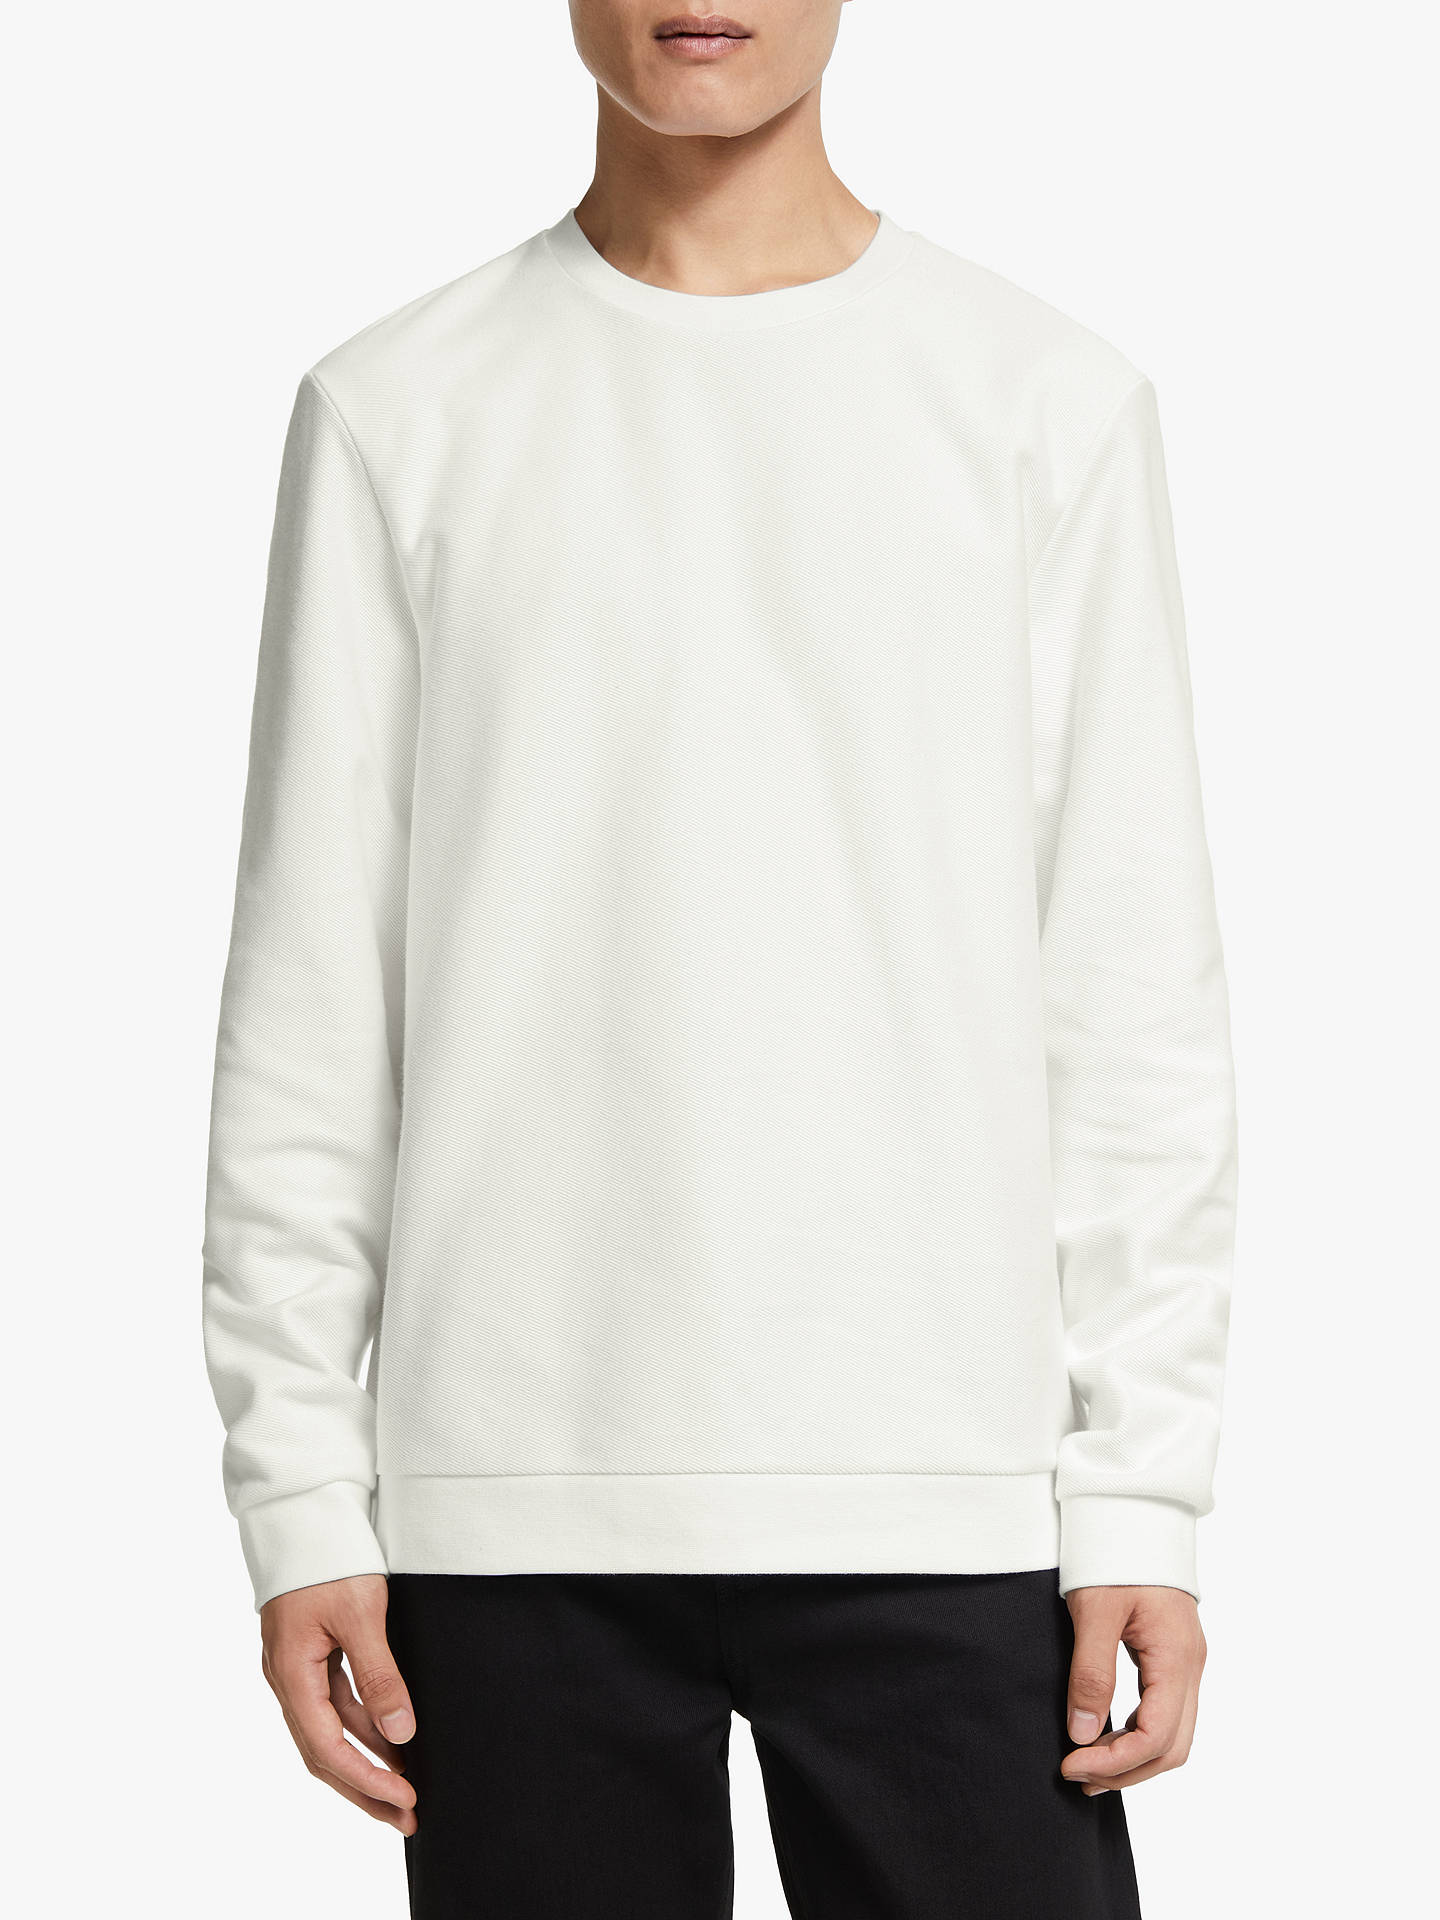 Buy Kin Twill Sweatshirt, White, S Online at johnlewis.com